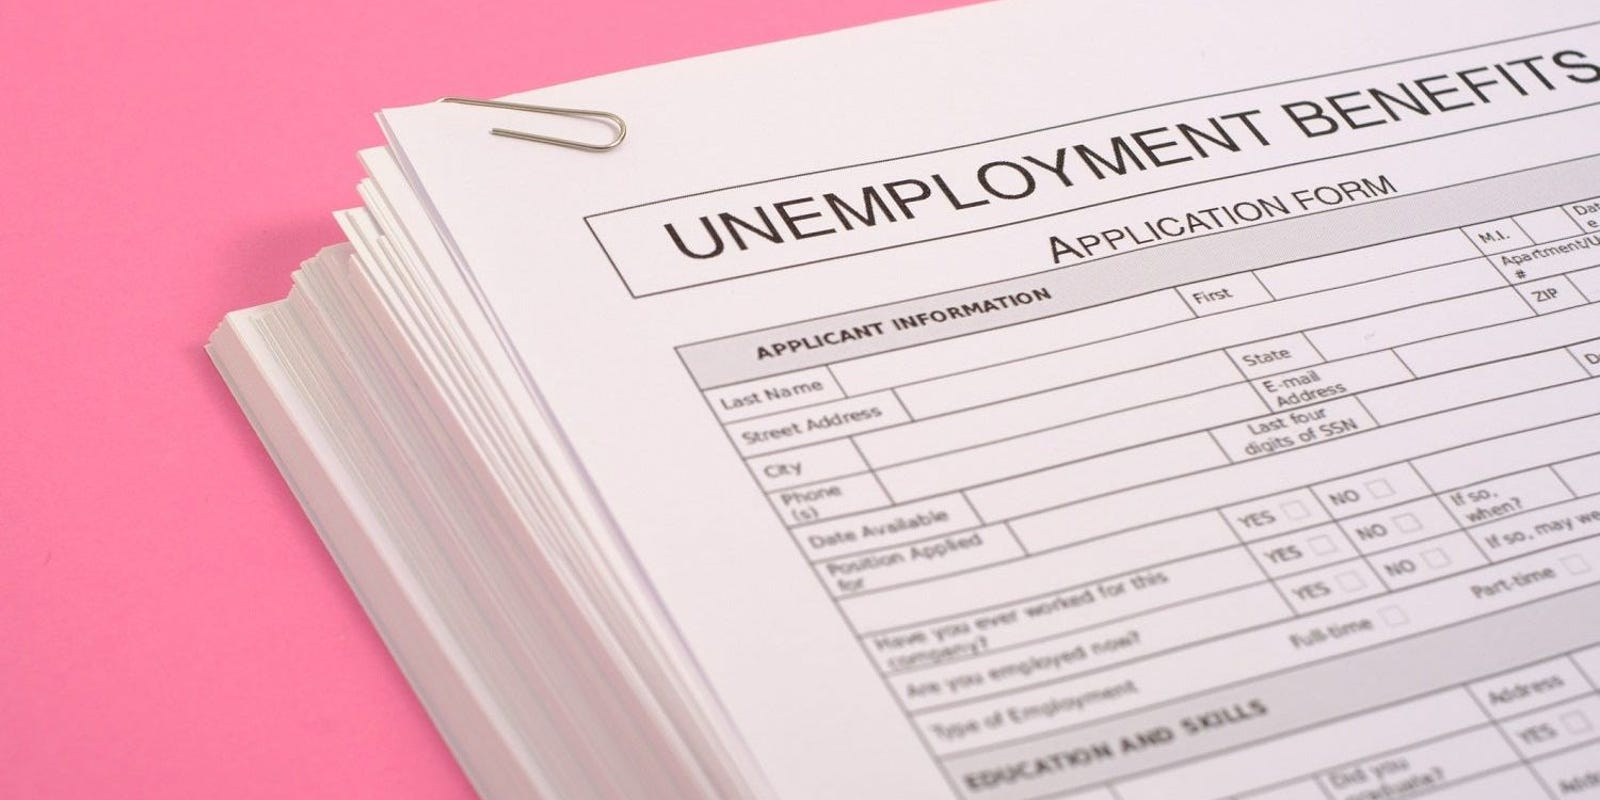 Another 790,021 Americans file for unemployment as the fallout from COVID-19 lingers